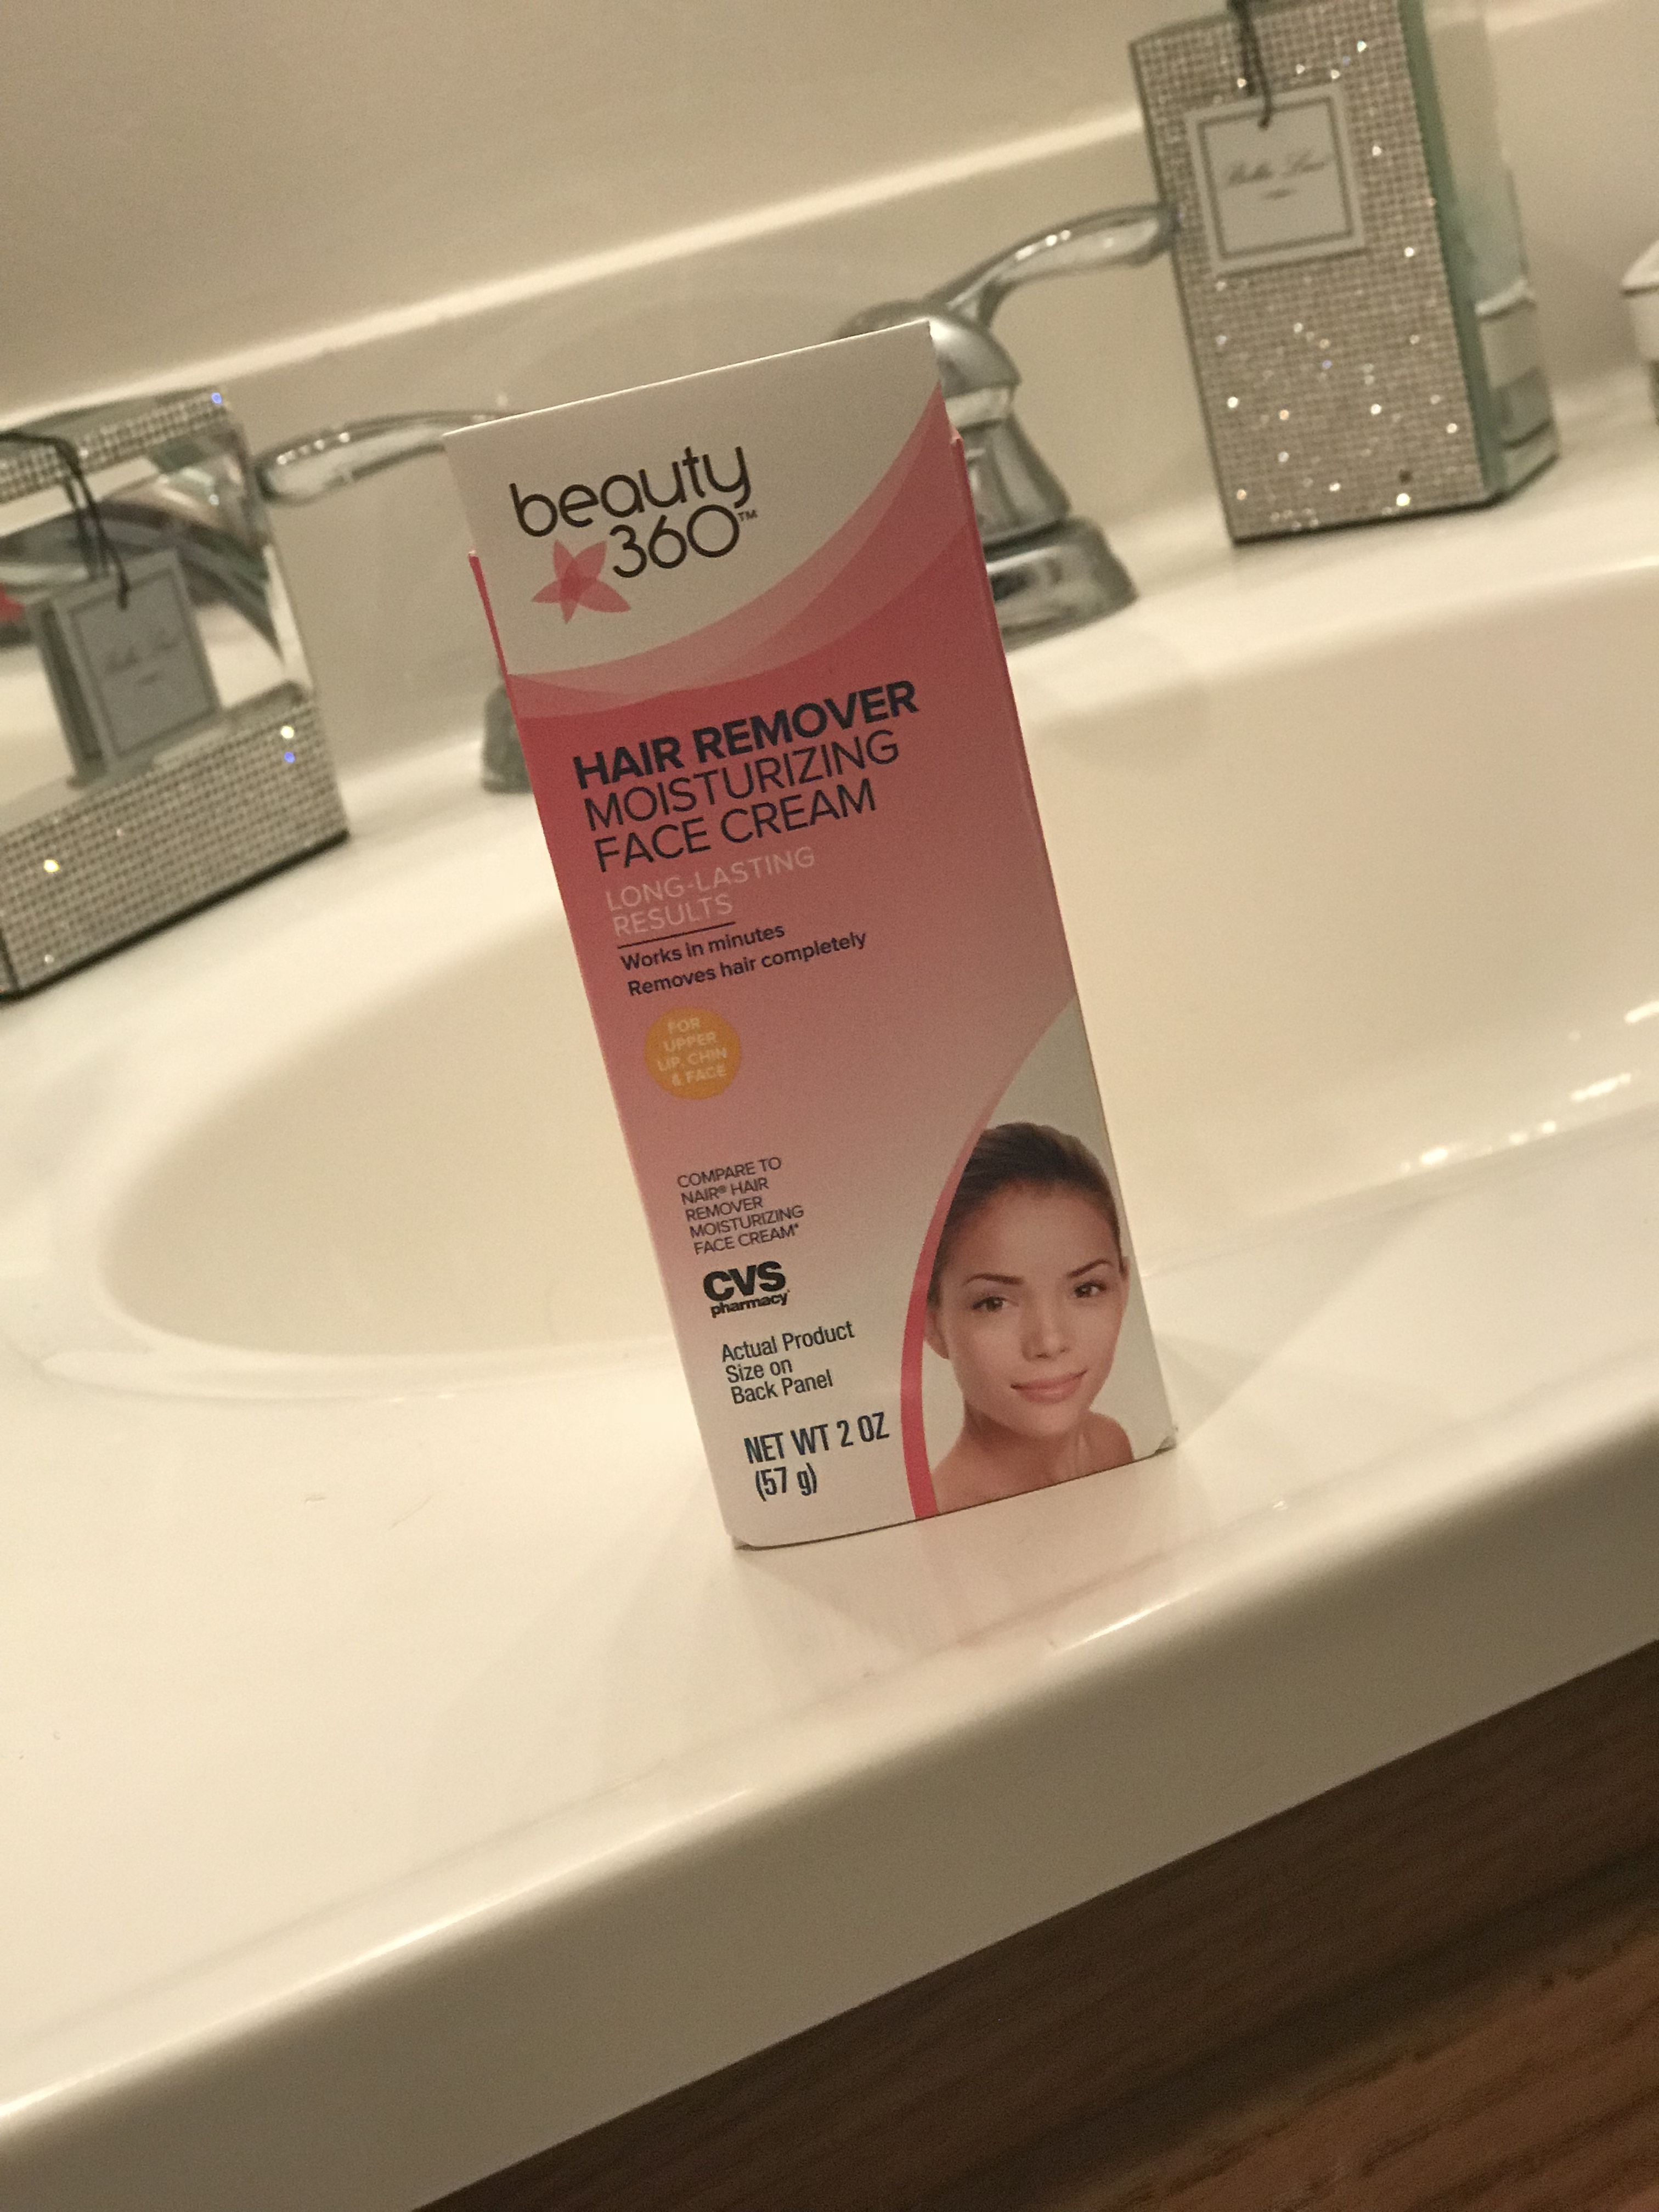 Pin By Para Dyse On Mieee Face Cream Beauty 360 Hair Removal